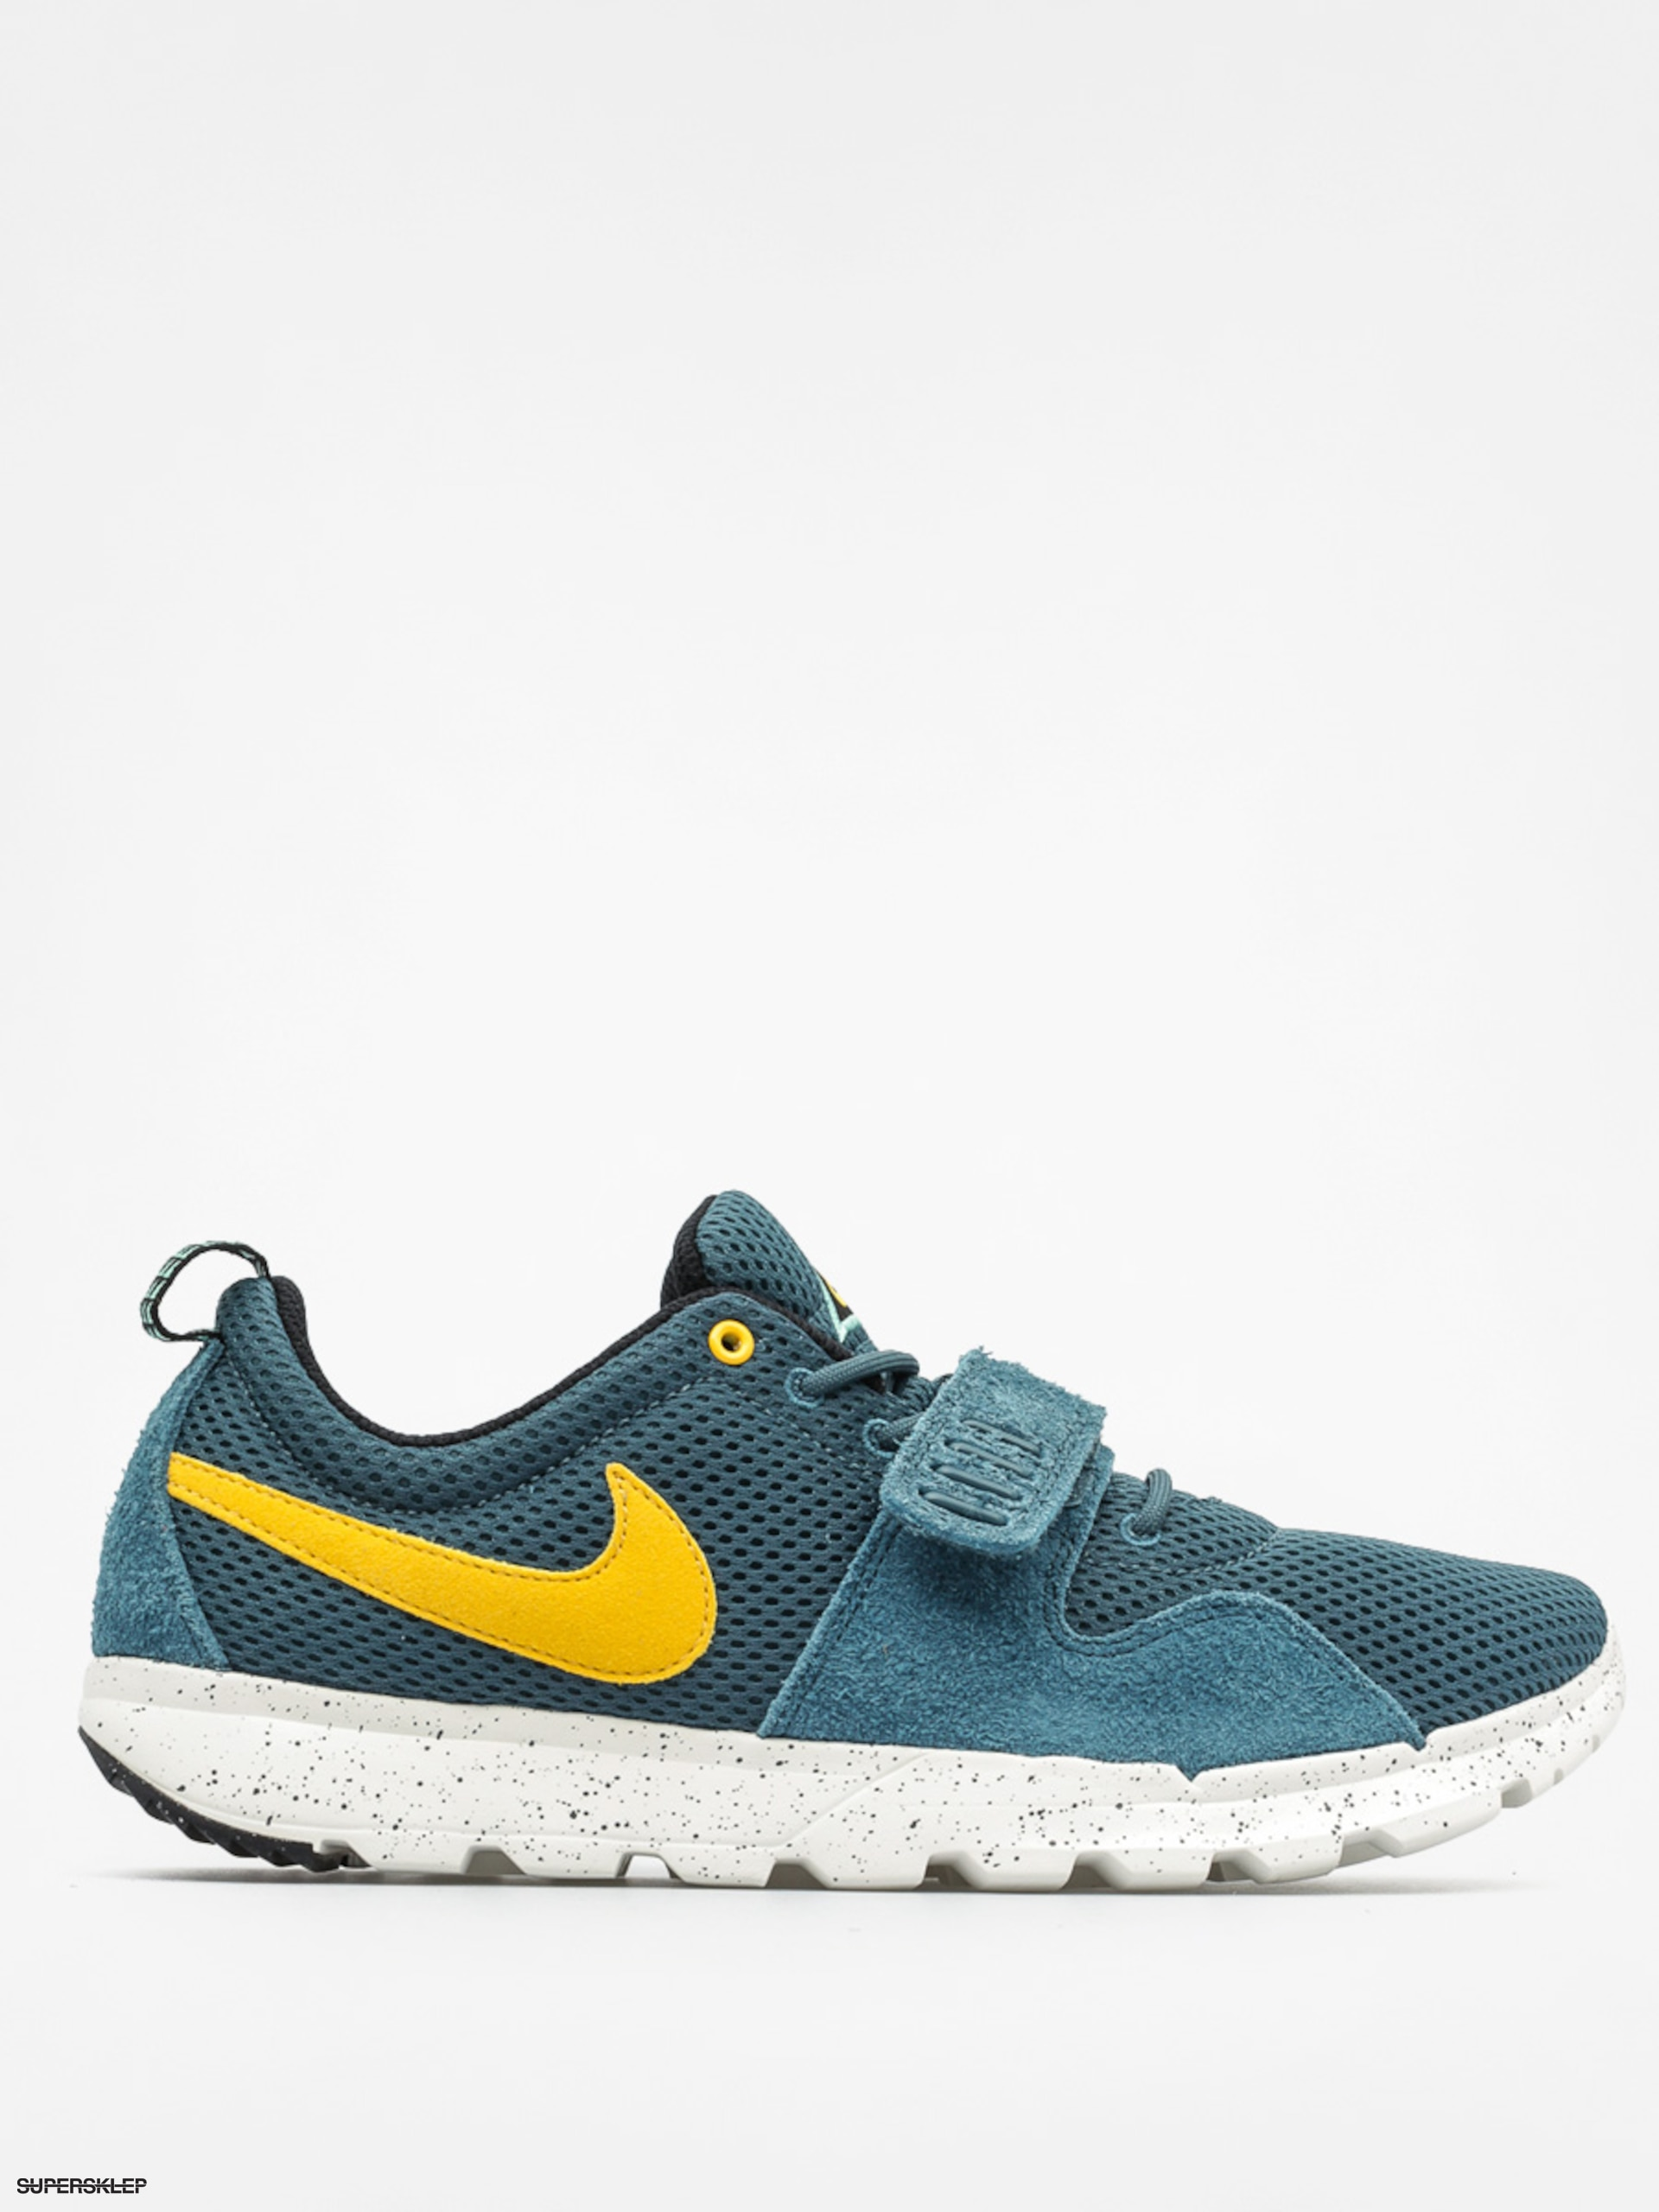 77d0ee7ac5af Boty Nike Trainerendor (night factor varsity maize sl)